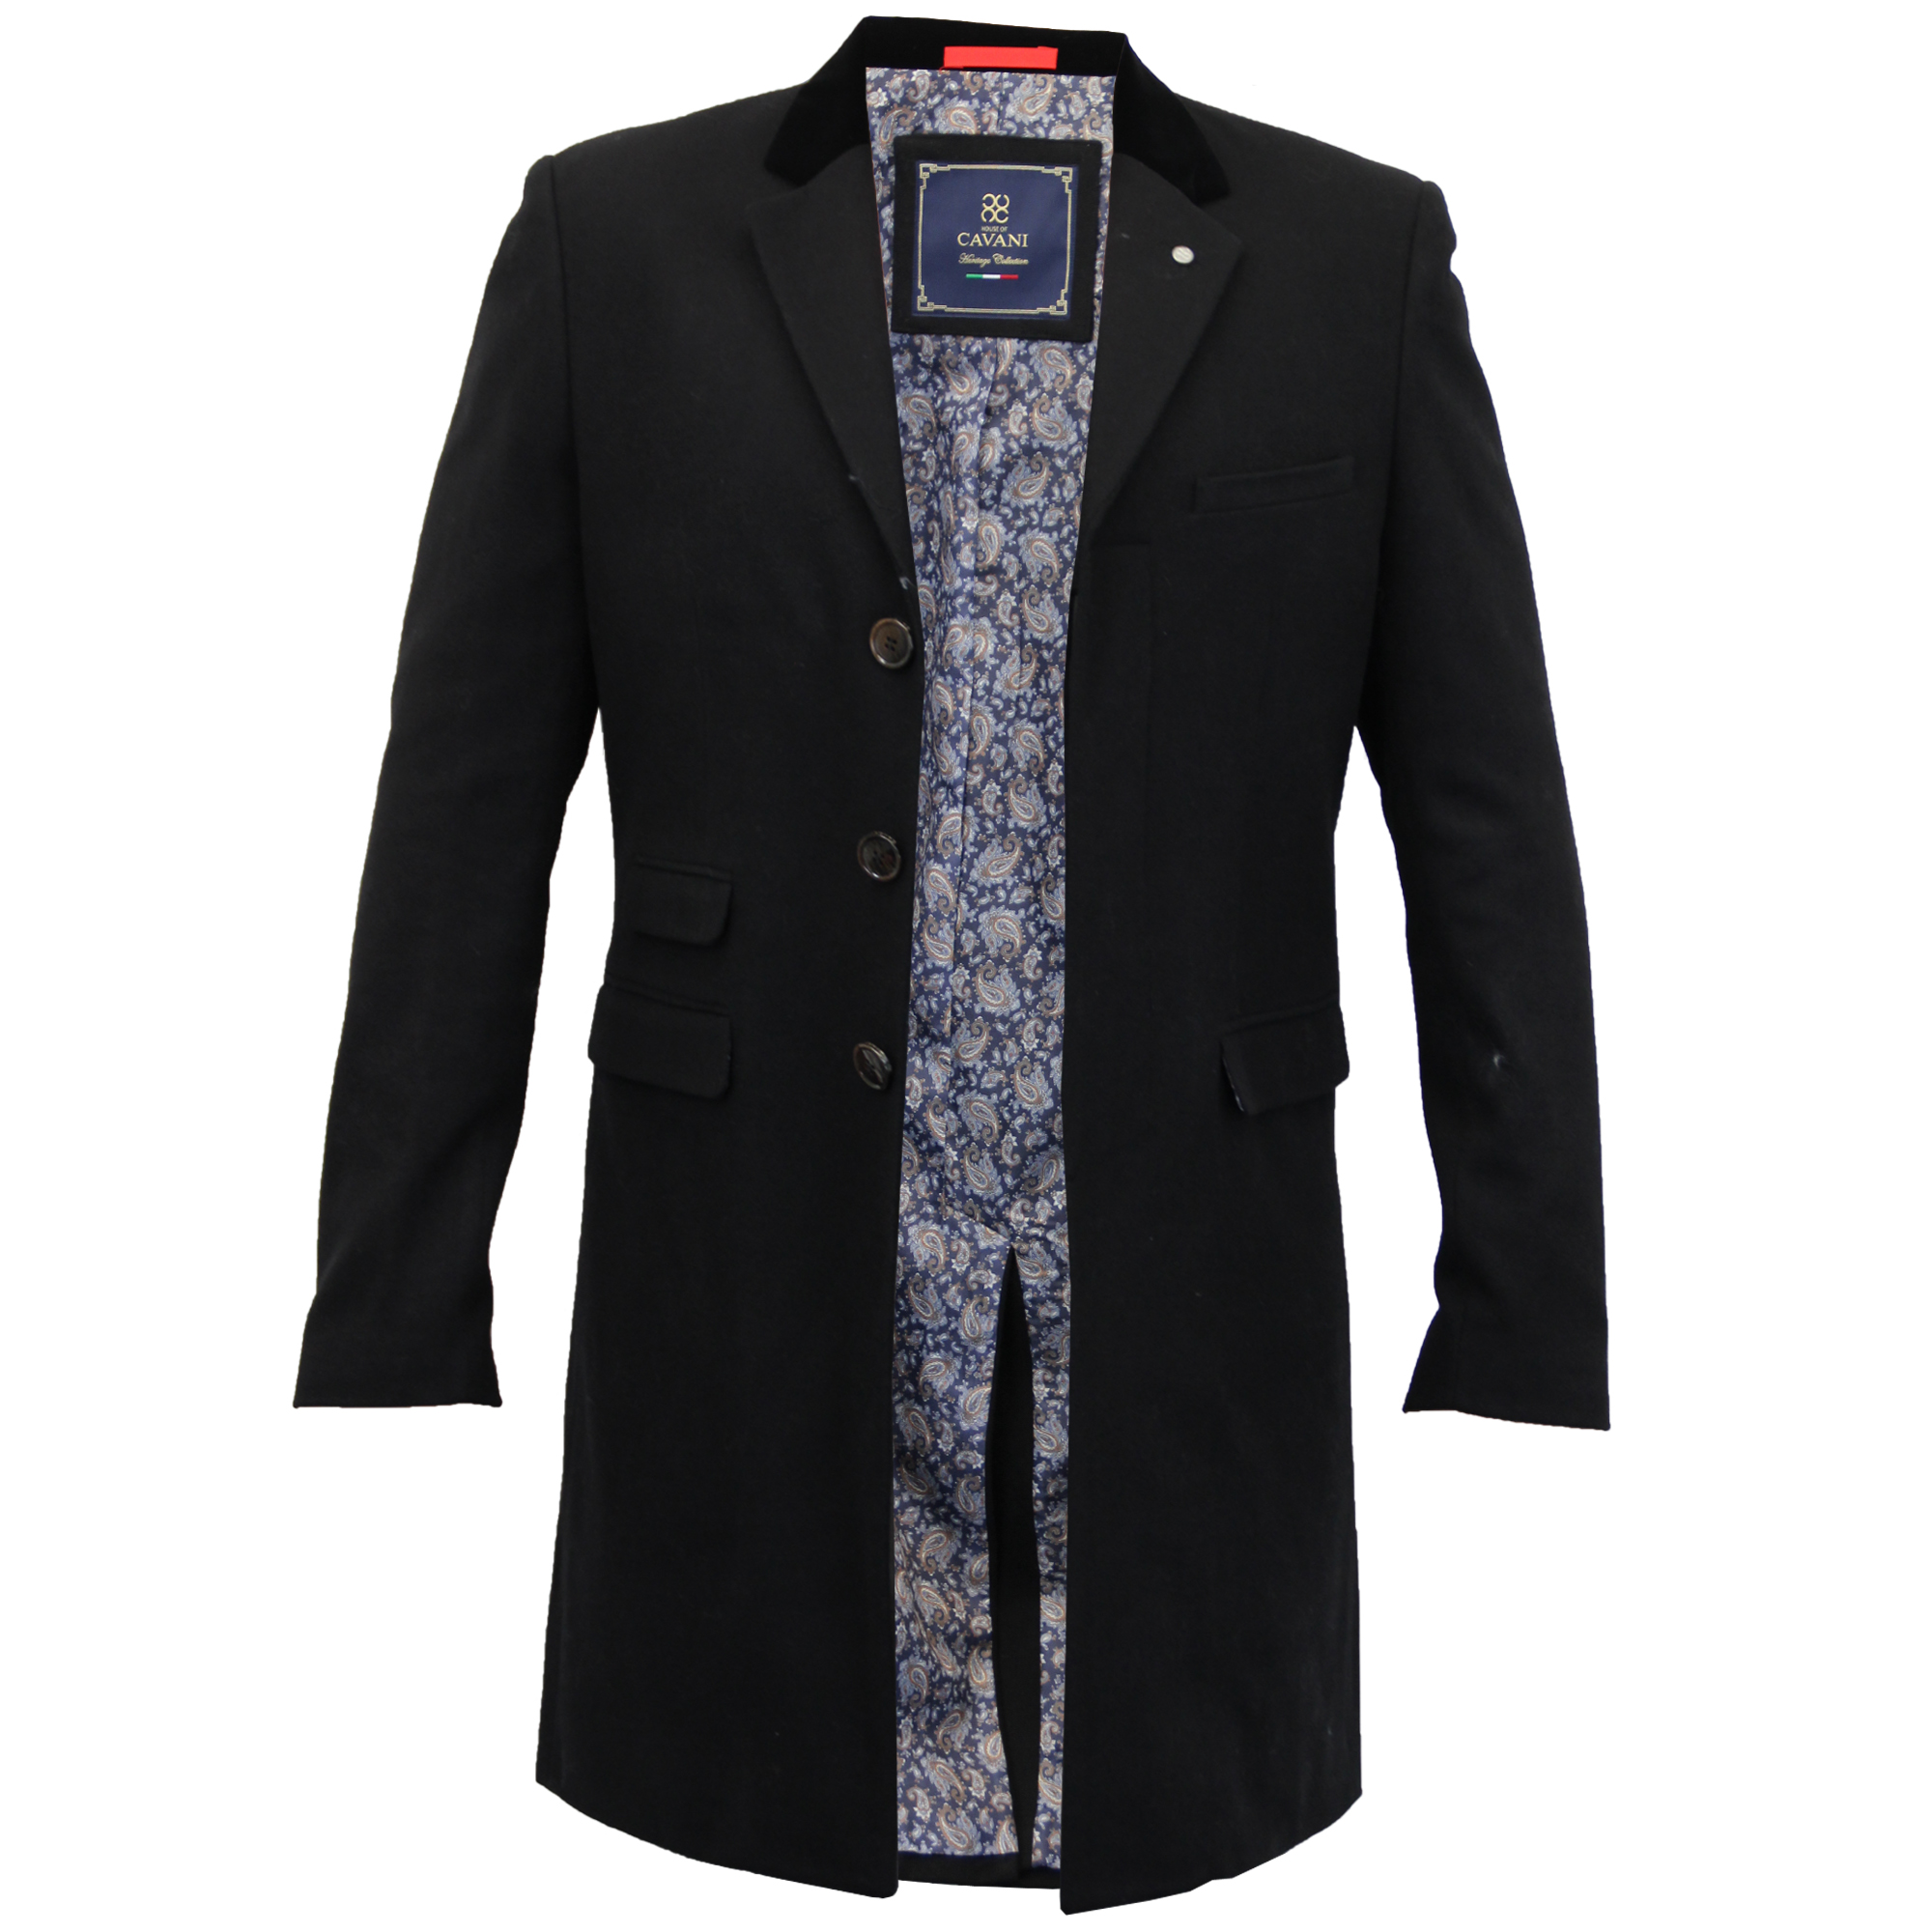 Find mens slim fit coat at Macy's Macy's Presents: The Edit - A curated mix of fashion and inspiration Check It Out Free Shipping with $75 purchase + Free Store Pickup.